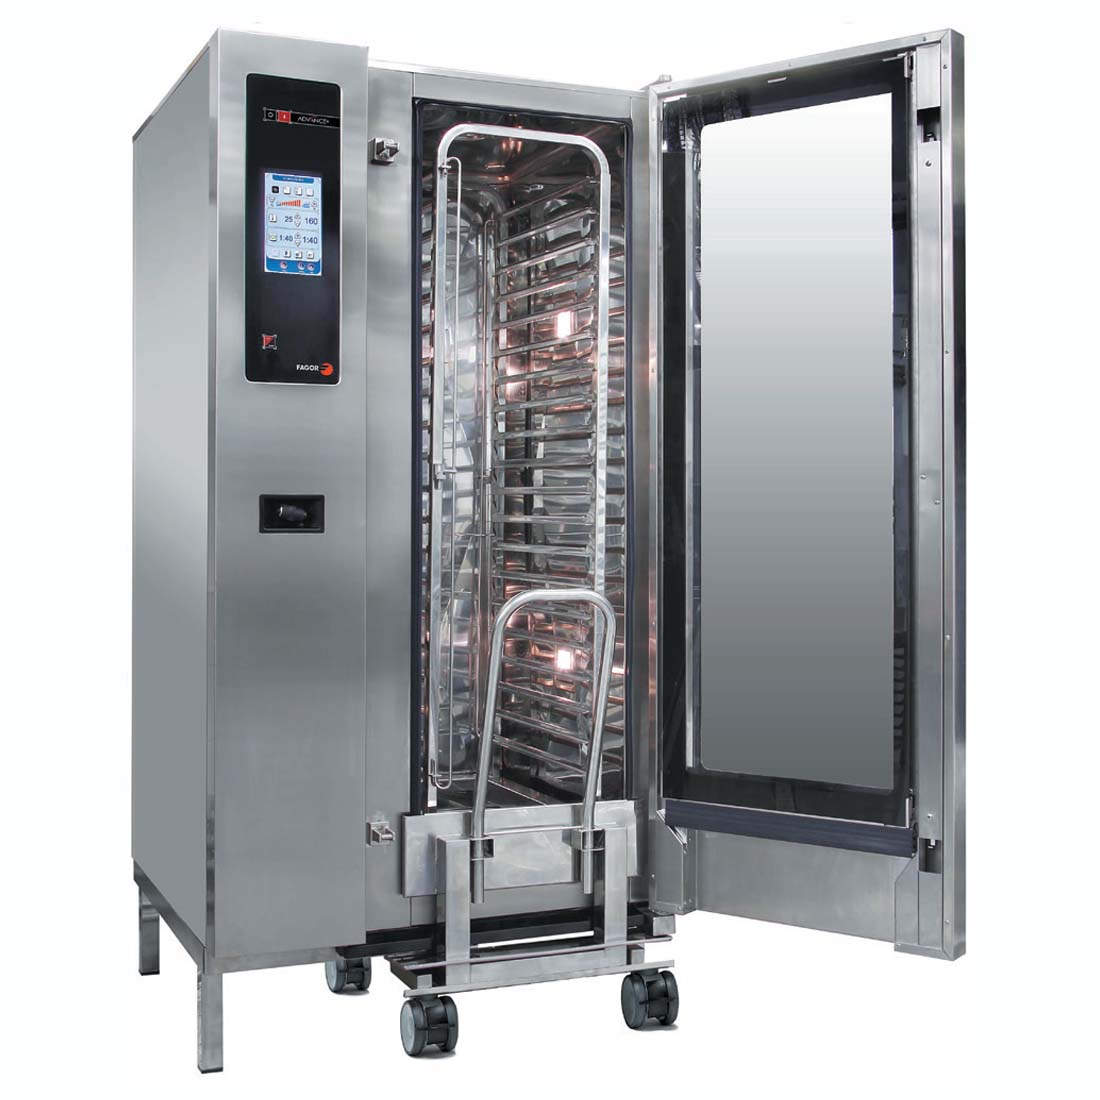 Fagor Advanced Plus Electric 20 Trays Combi Oven - APE-201